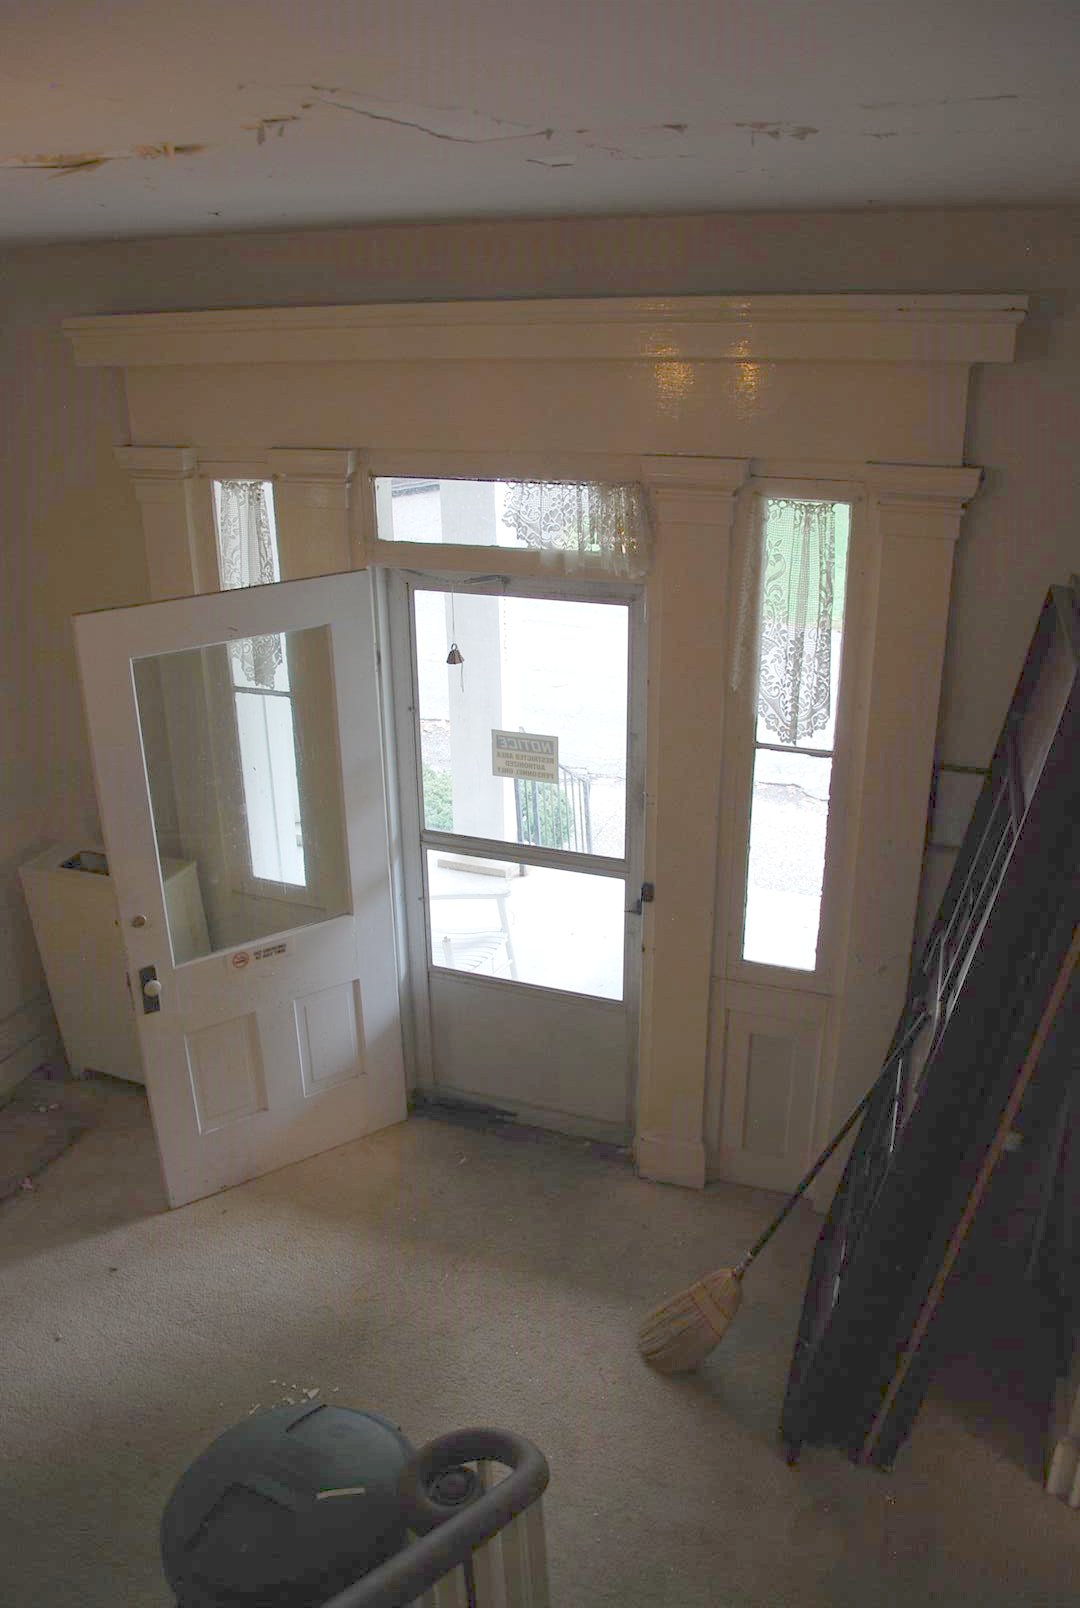 View of Interior Casing, Transom, and Sidelights at First Floor Main Entry.